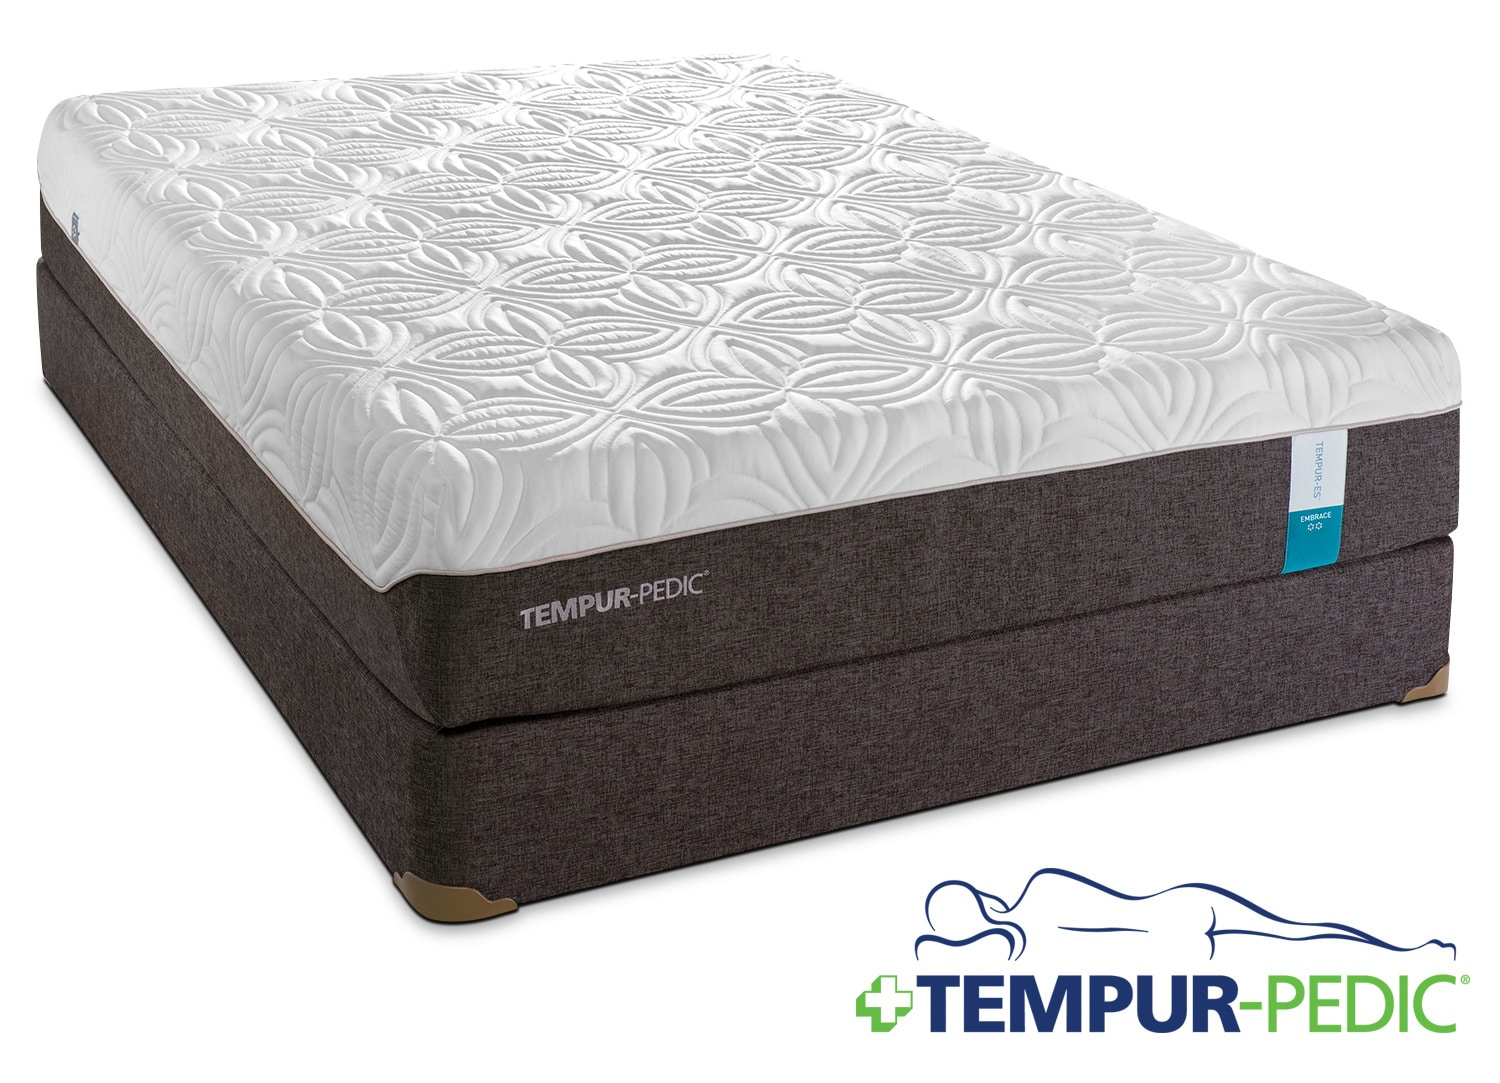 Tempur-Pedic Embrace 2.0 Plush Twin Mattress and Boxspring Set